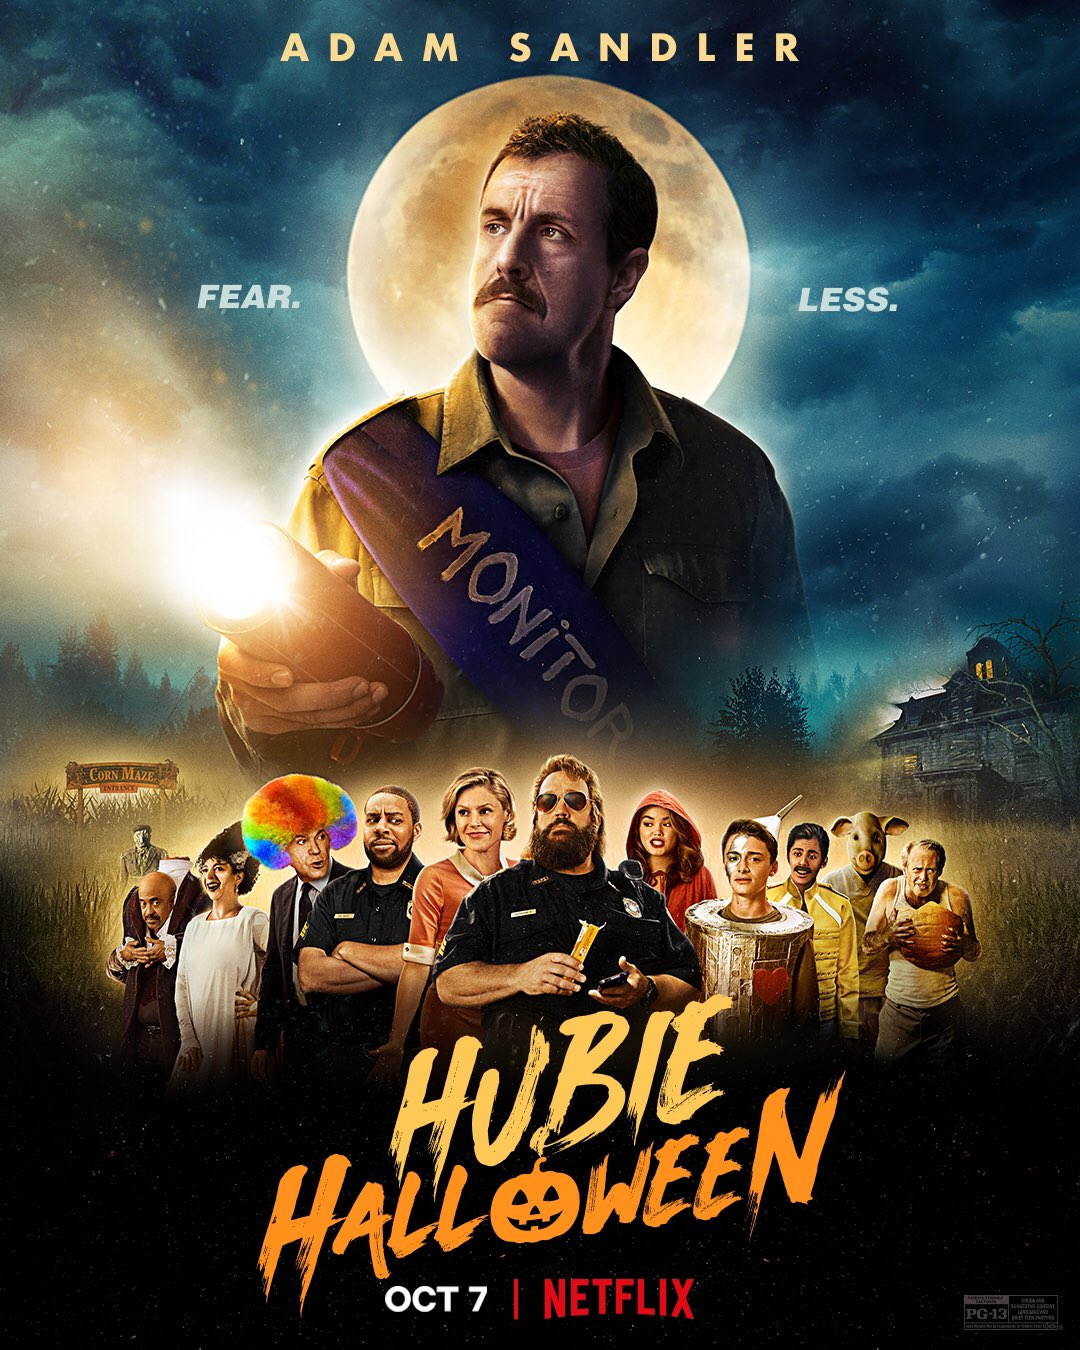 Hubie Halloween (2020) Subtitle (English Srt) Download